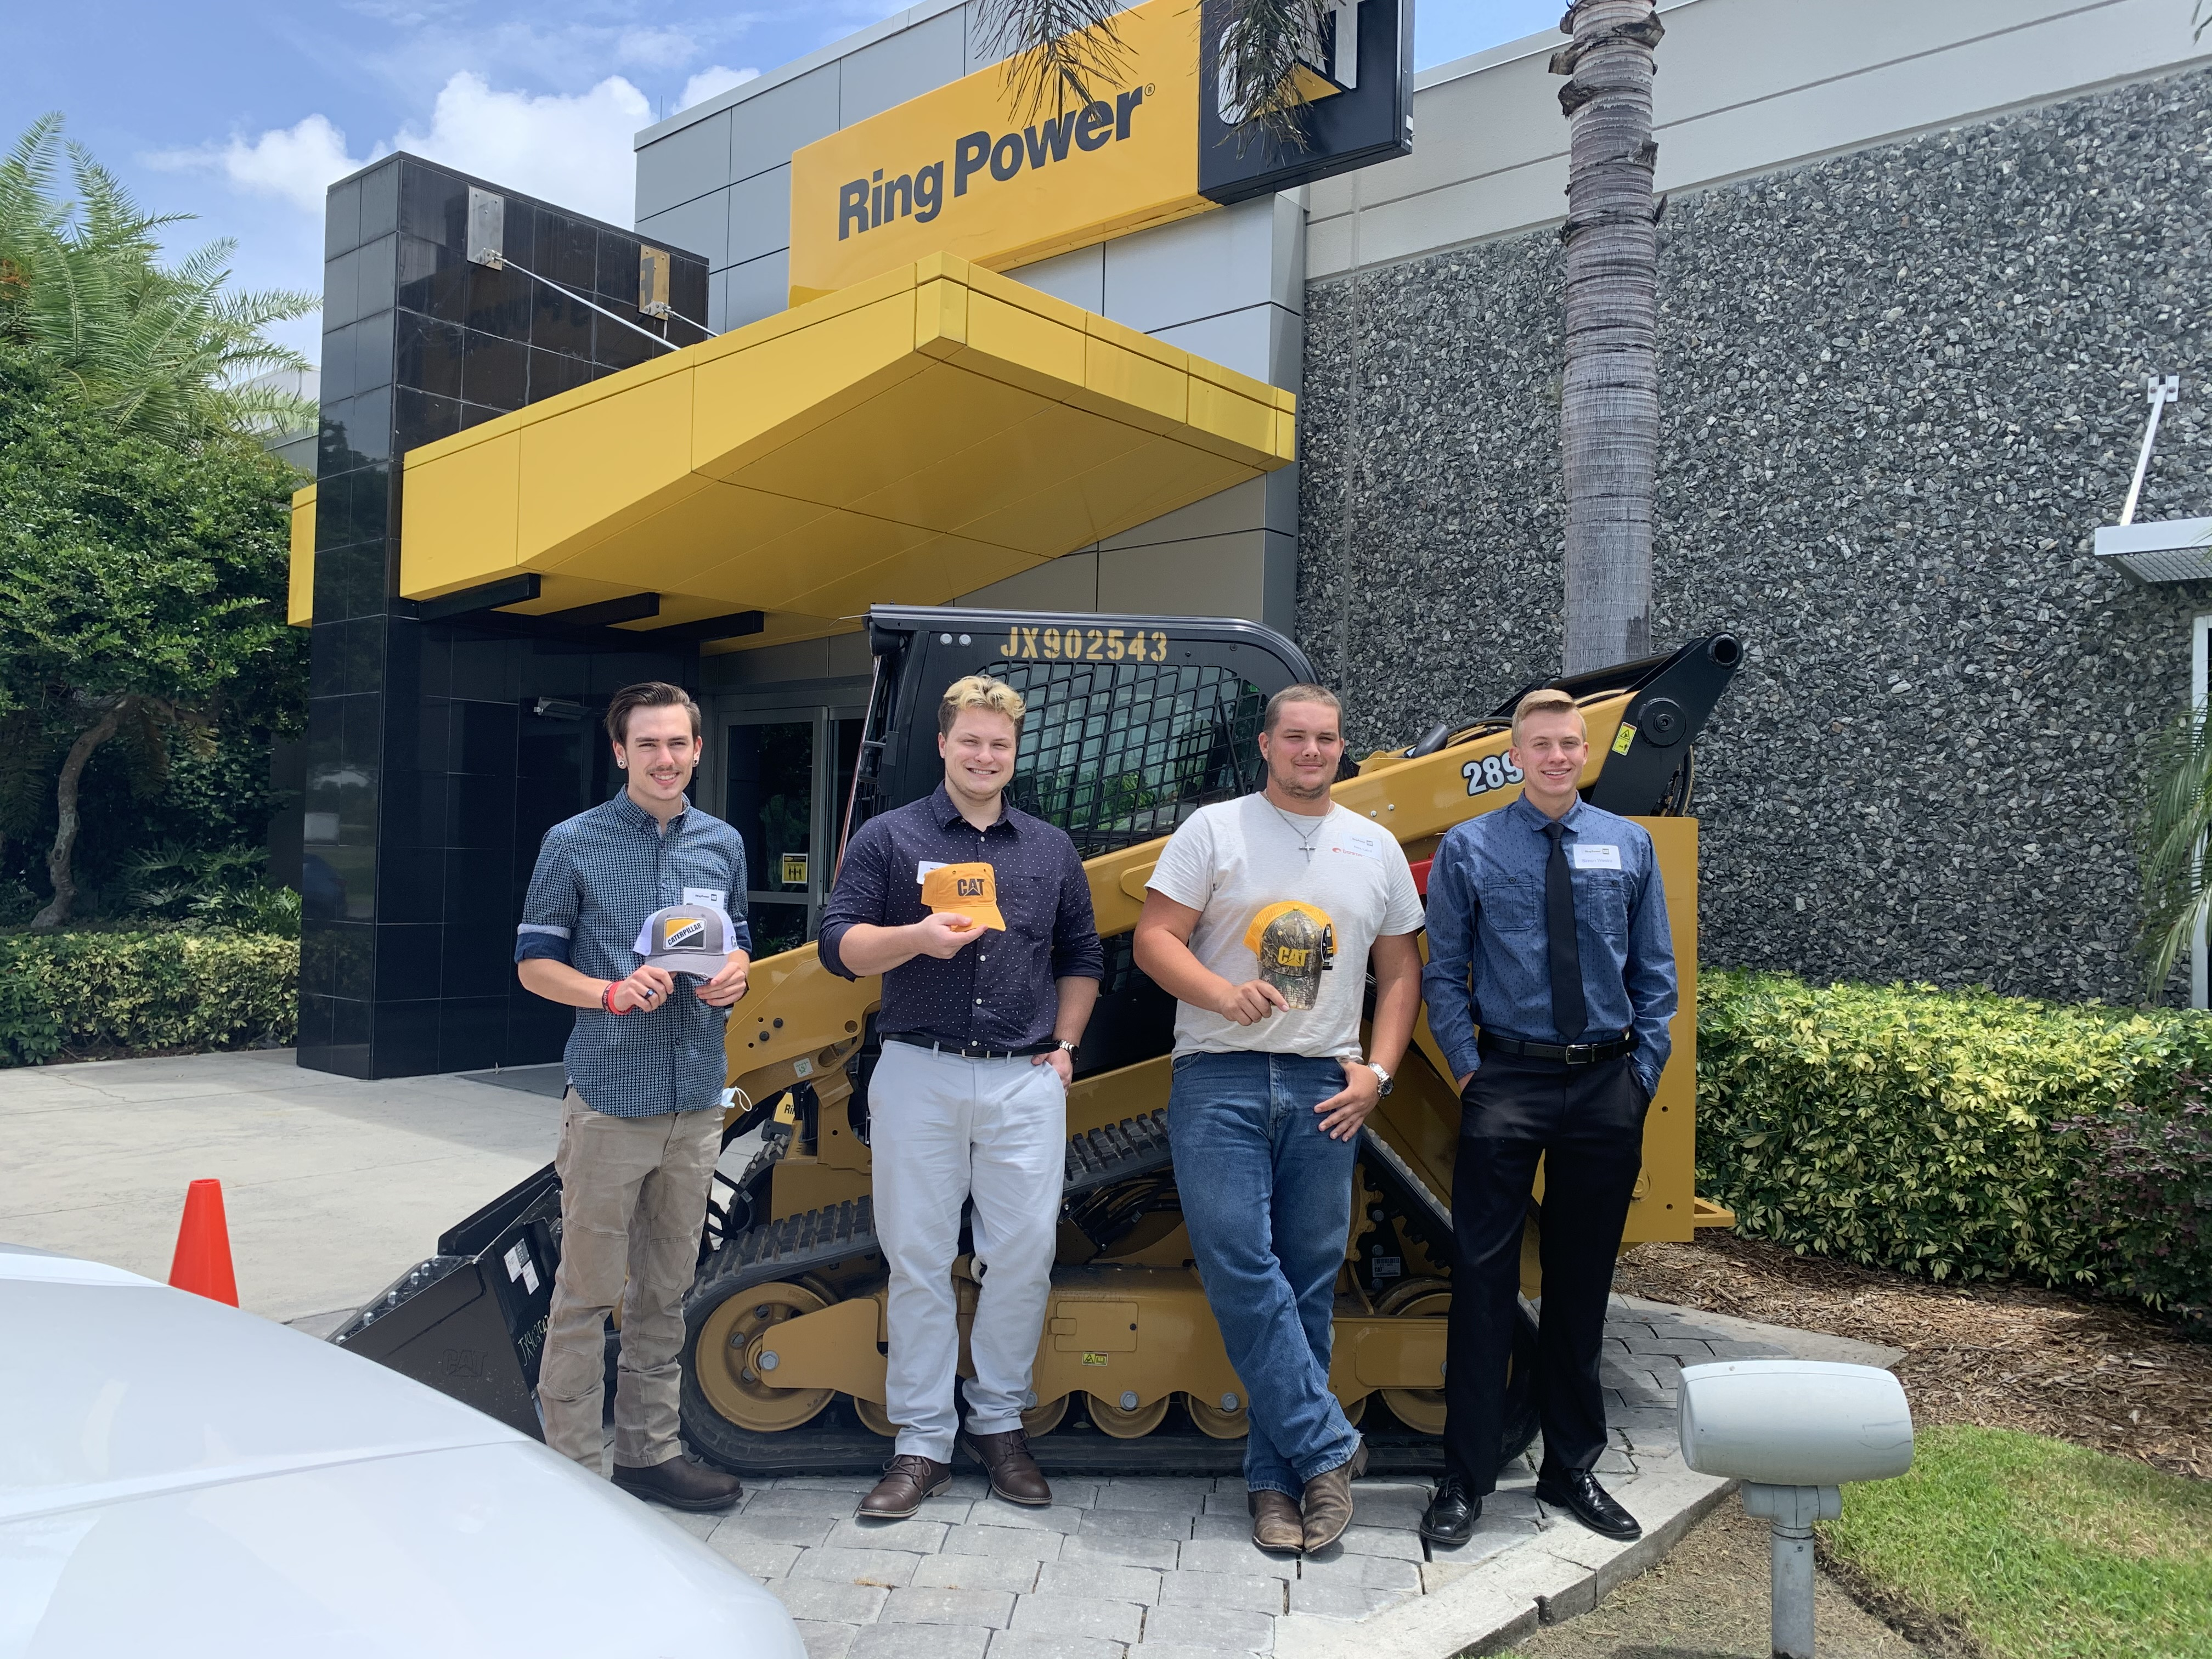 L-R: Lucas Missall (Gainesville PSD), Mason Underkoffler (Orlando HE), Alex Laird (Tampa HE), Simon Westra (Tampa HE). The ThinkBIG Technician Scholarship recipients will begin class in August.